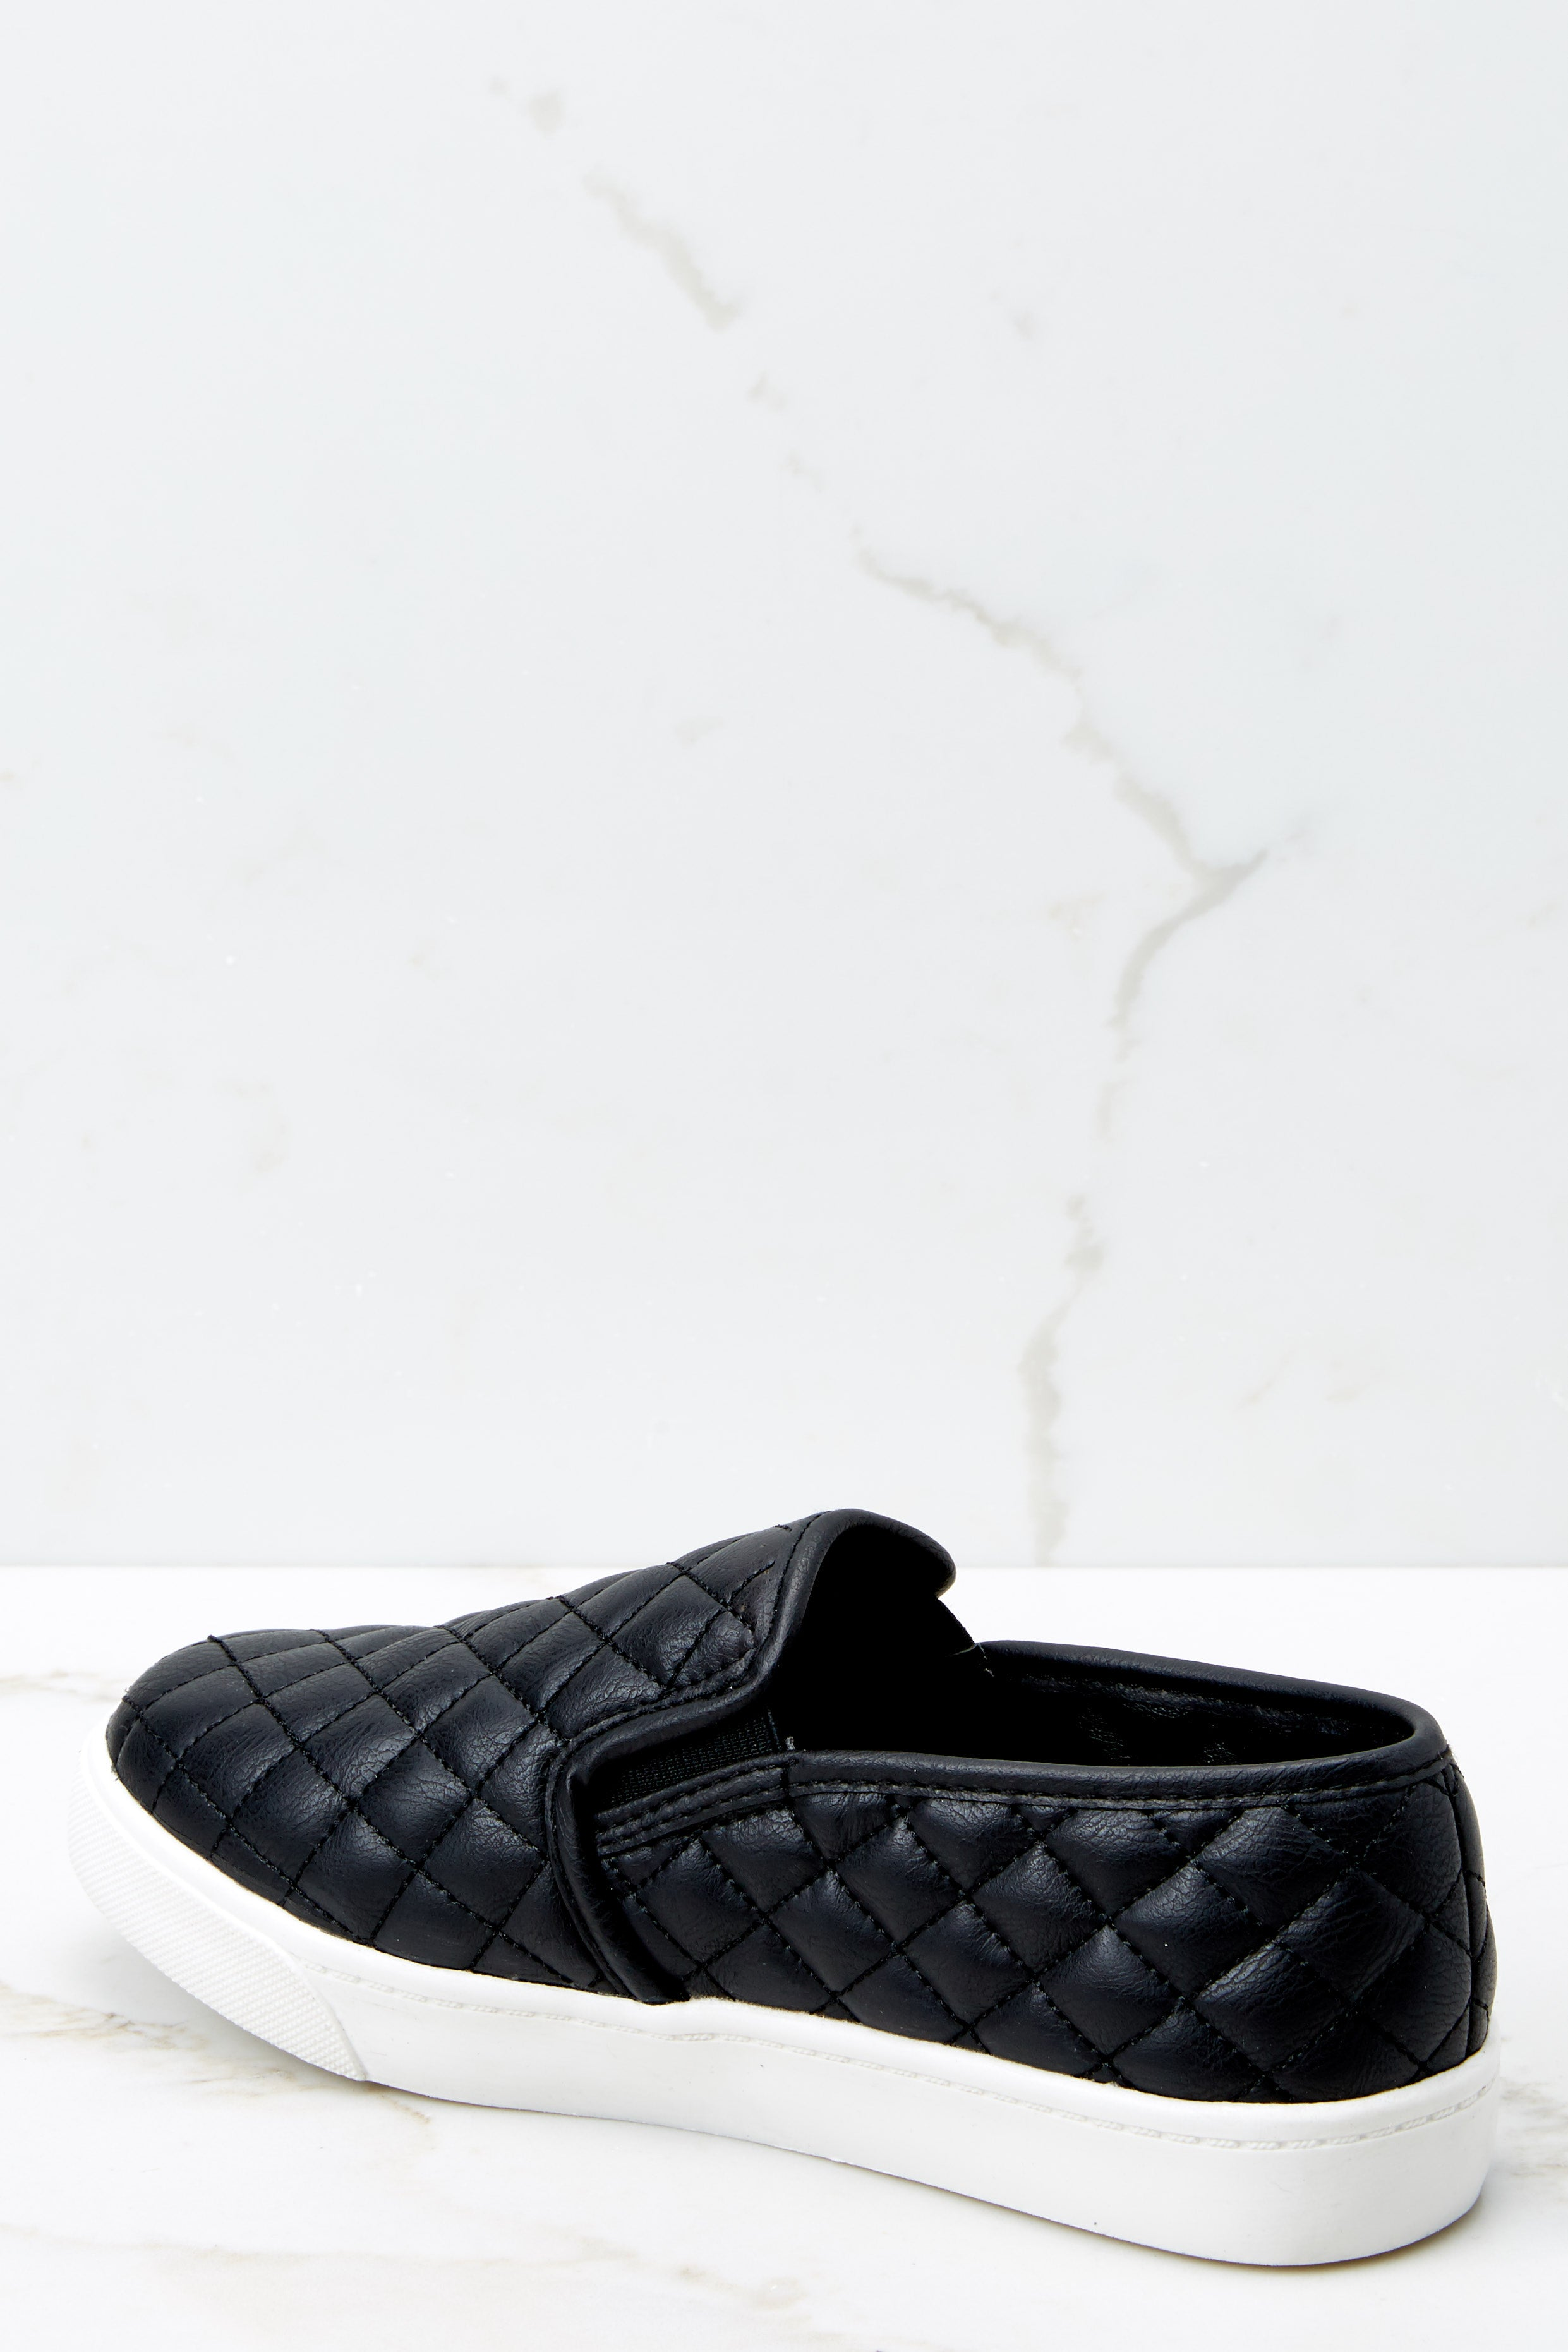 3 Passing Expectations Black Slip On Sneakers at reddressboutique.com